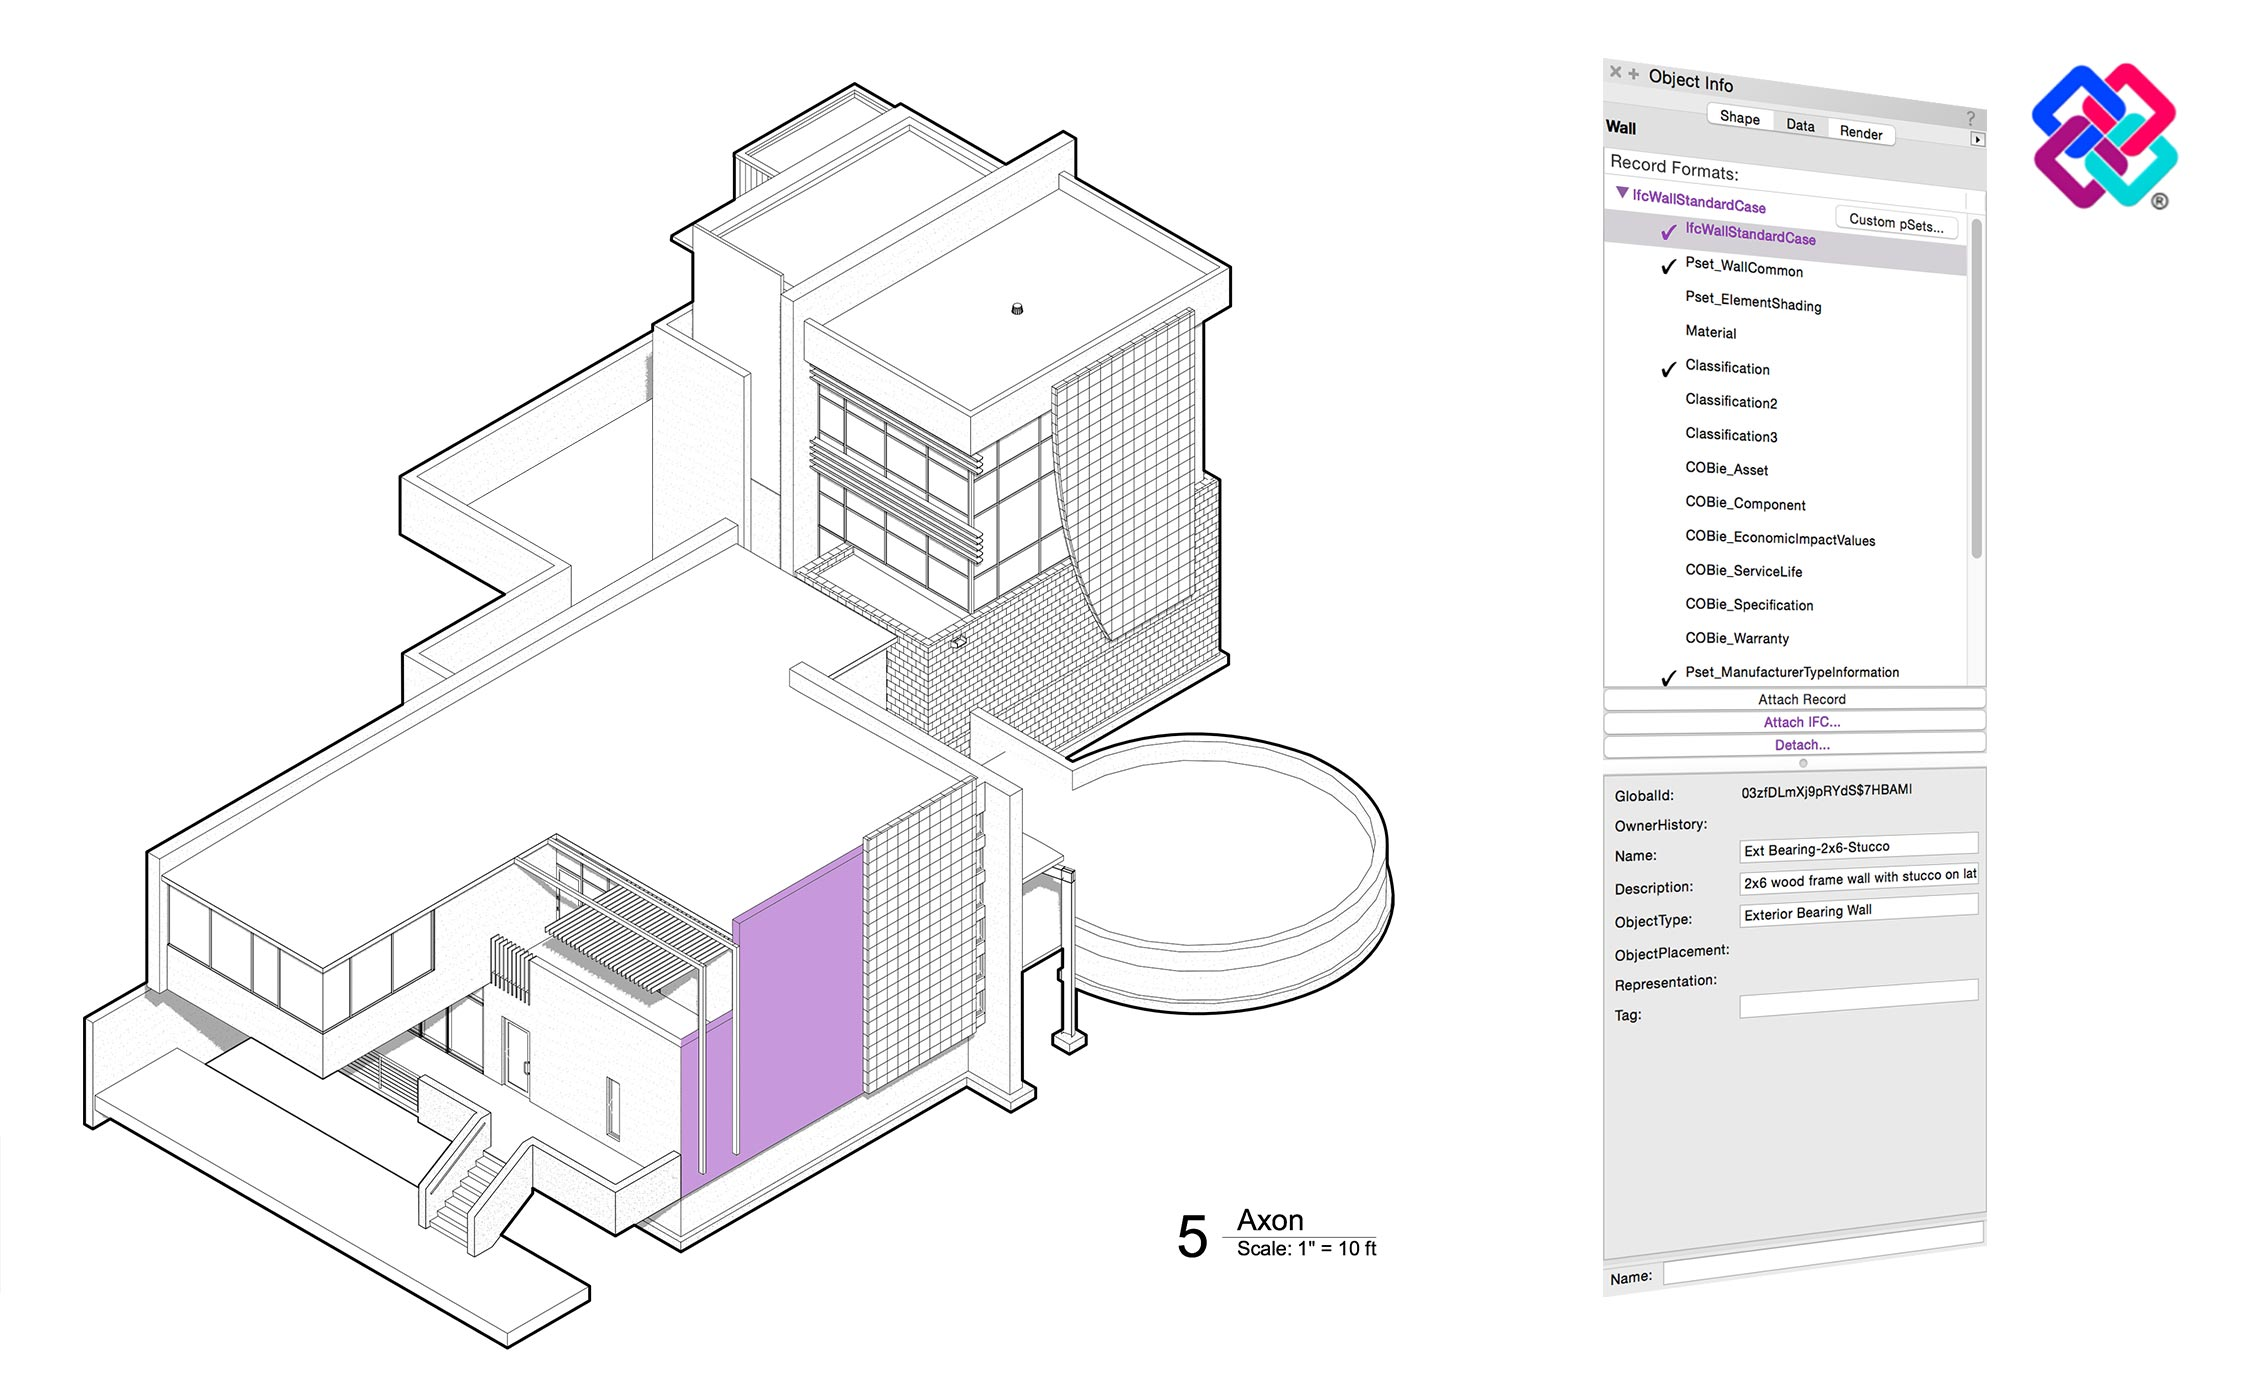 More Accessible IFC BIM Data